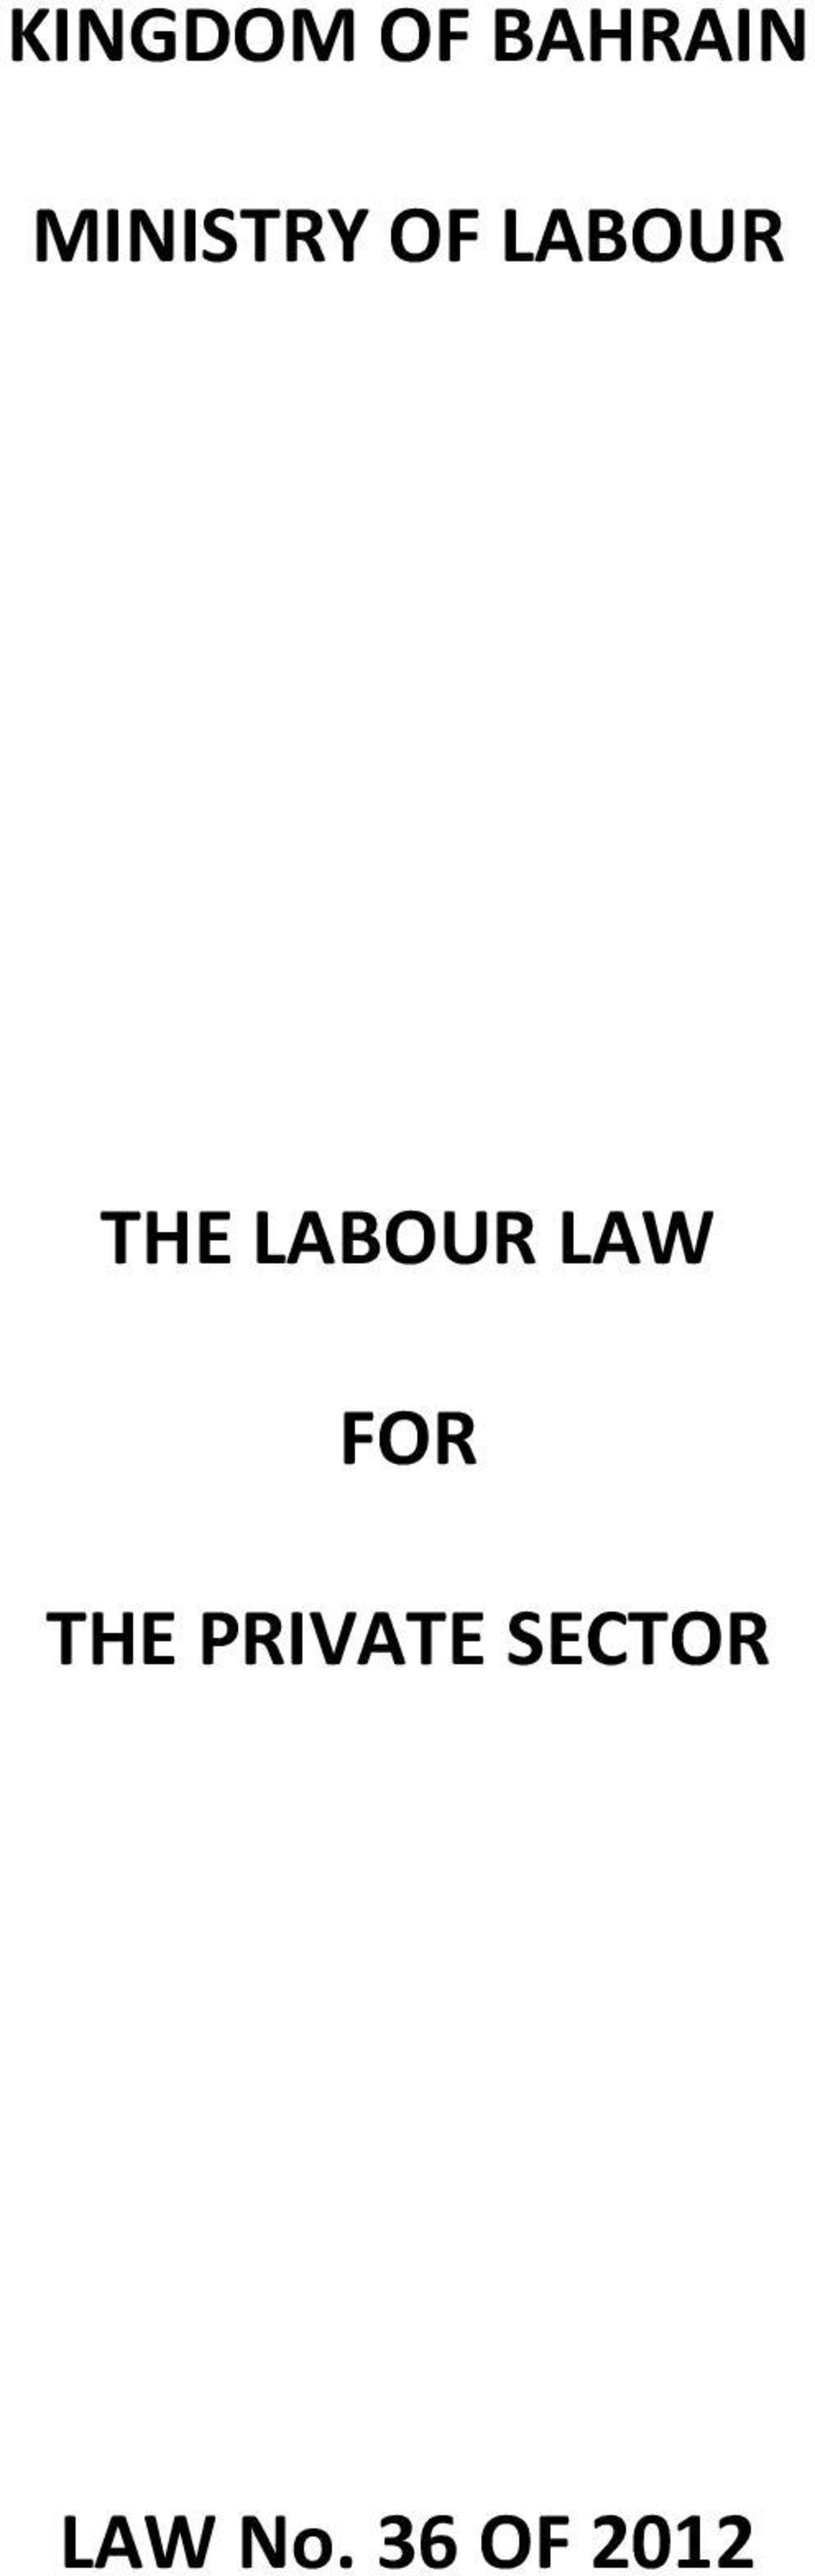 KINGDOM OF BAHRAIN MINISTRY OF LABOUR THE LABOUR LAW FOR THE